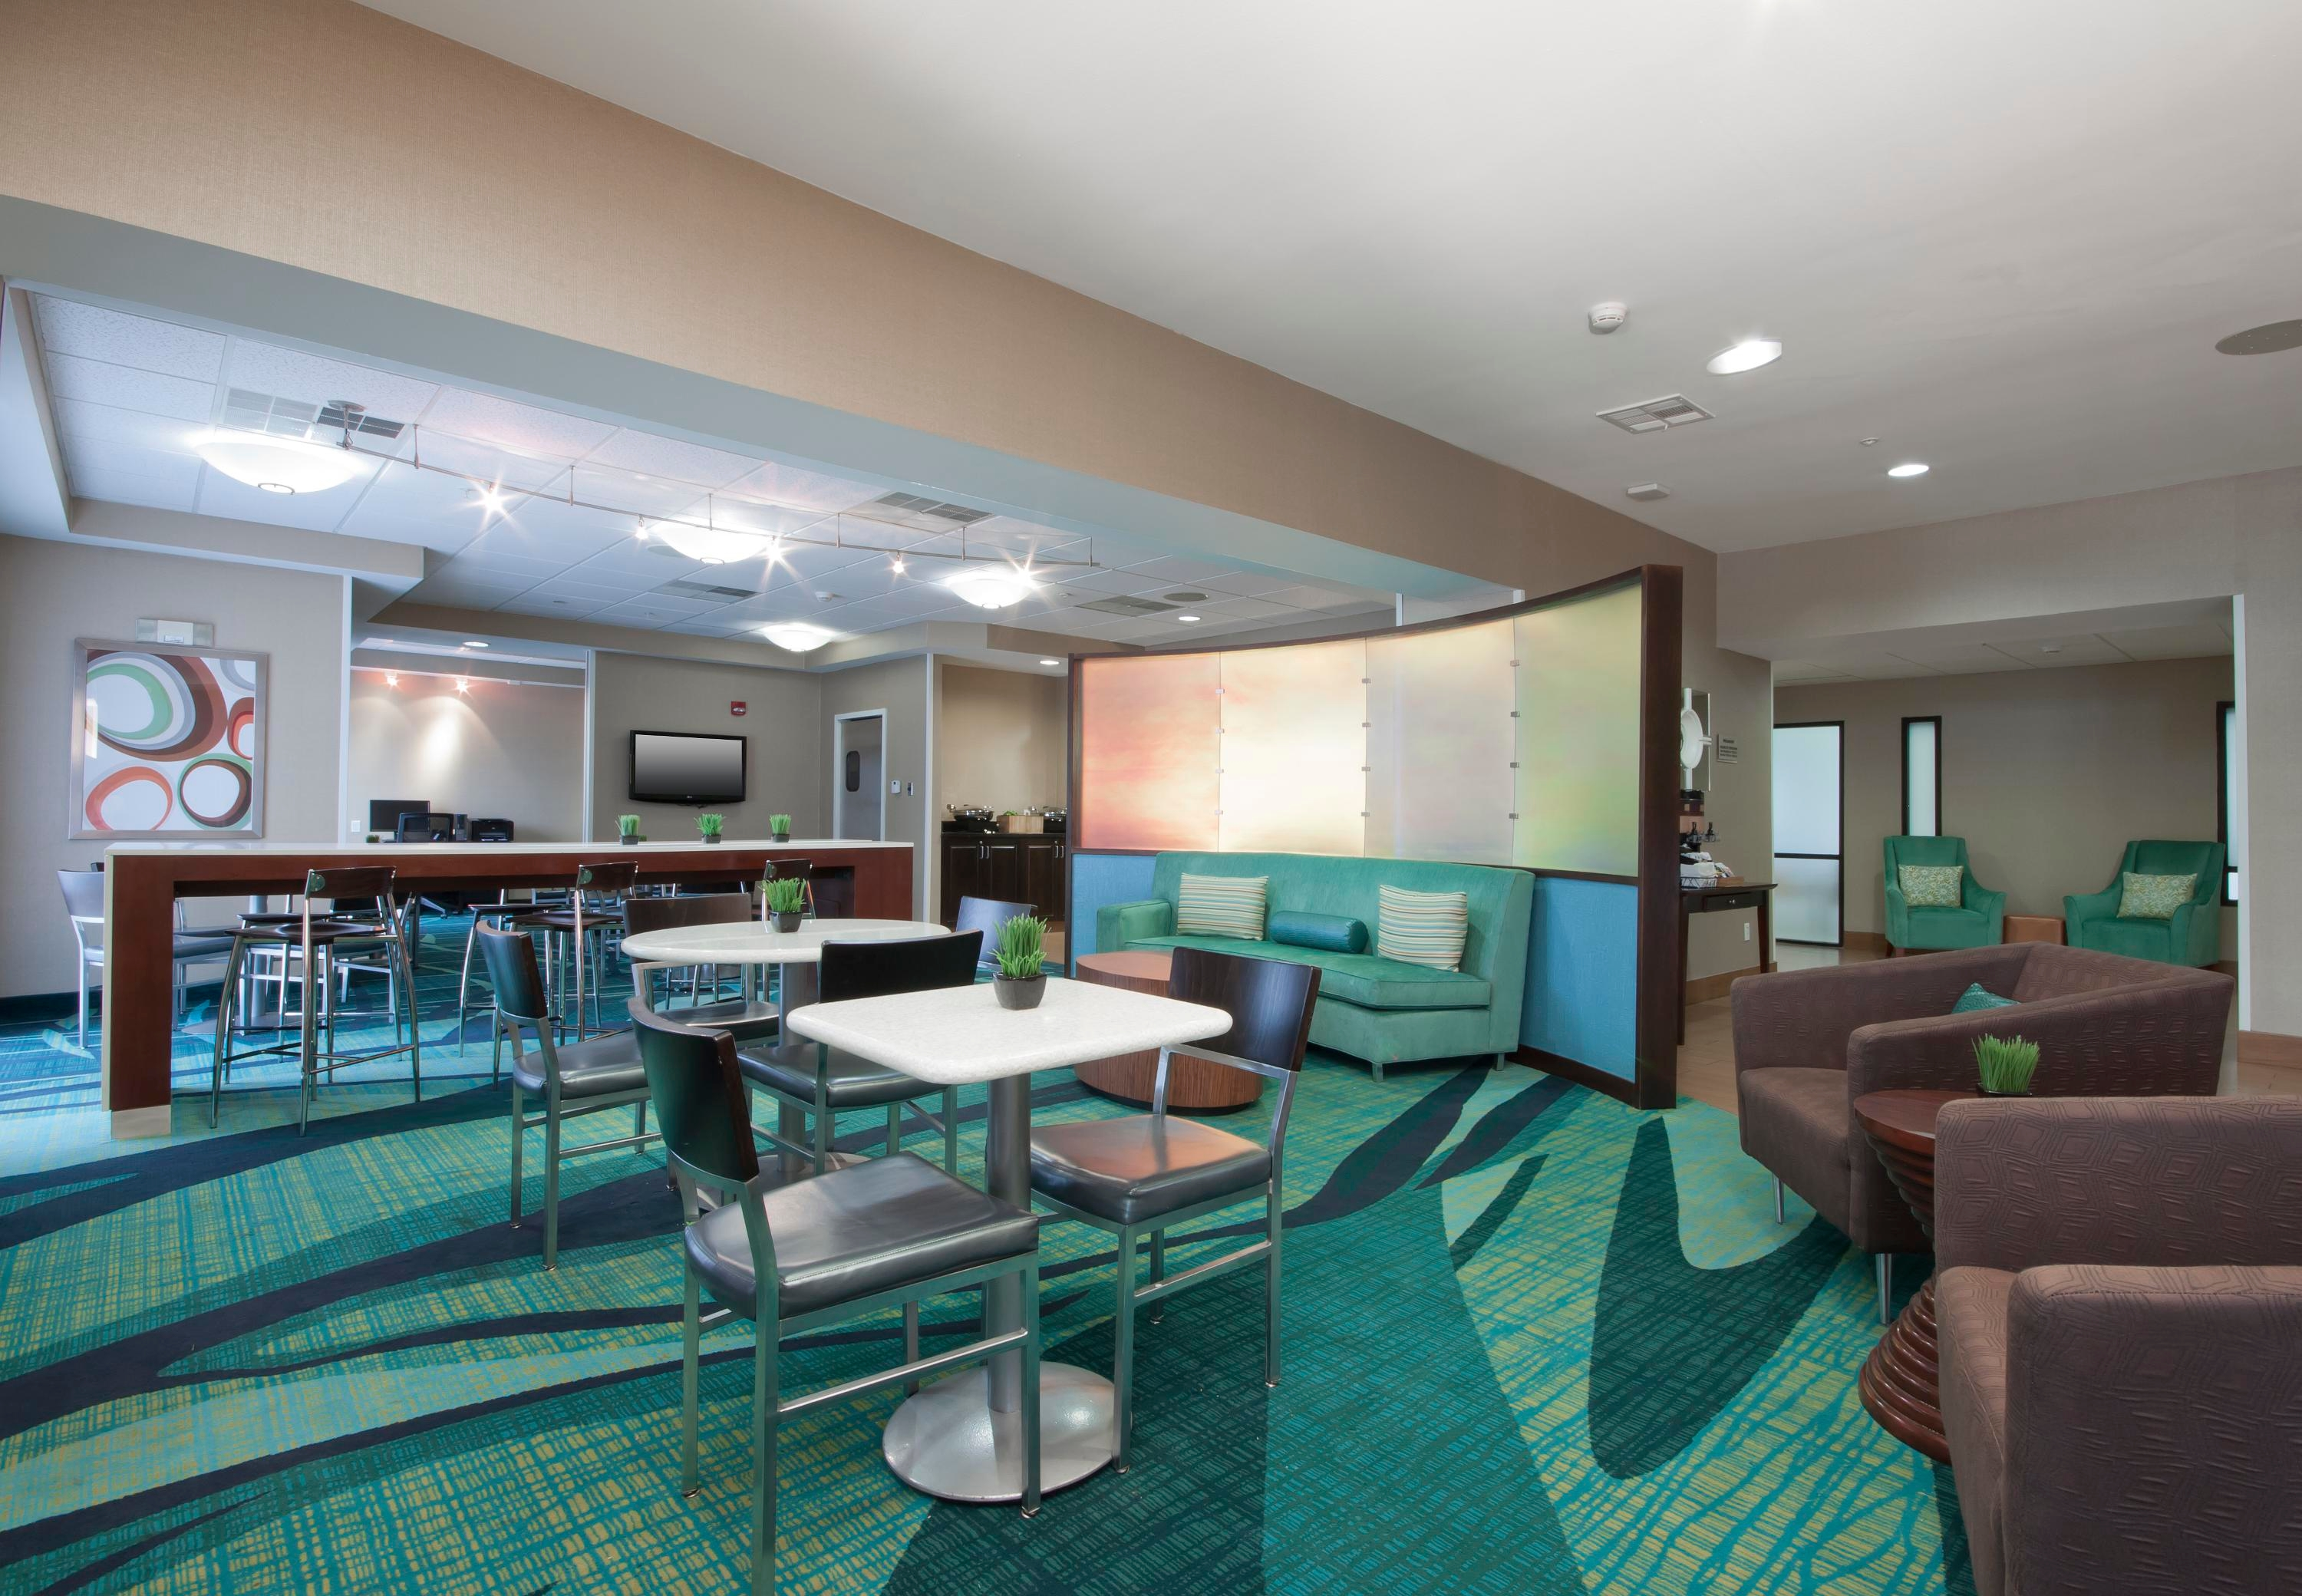 SpringHill Suites by Marriott Tulsa image 11